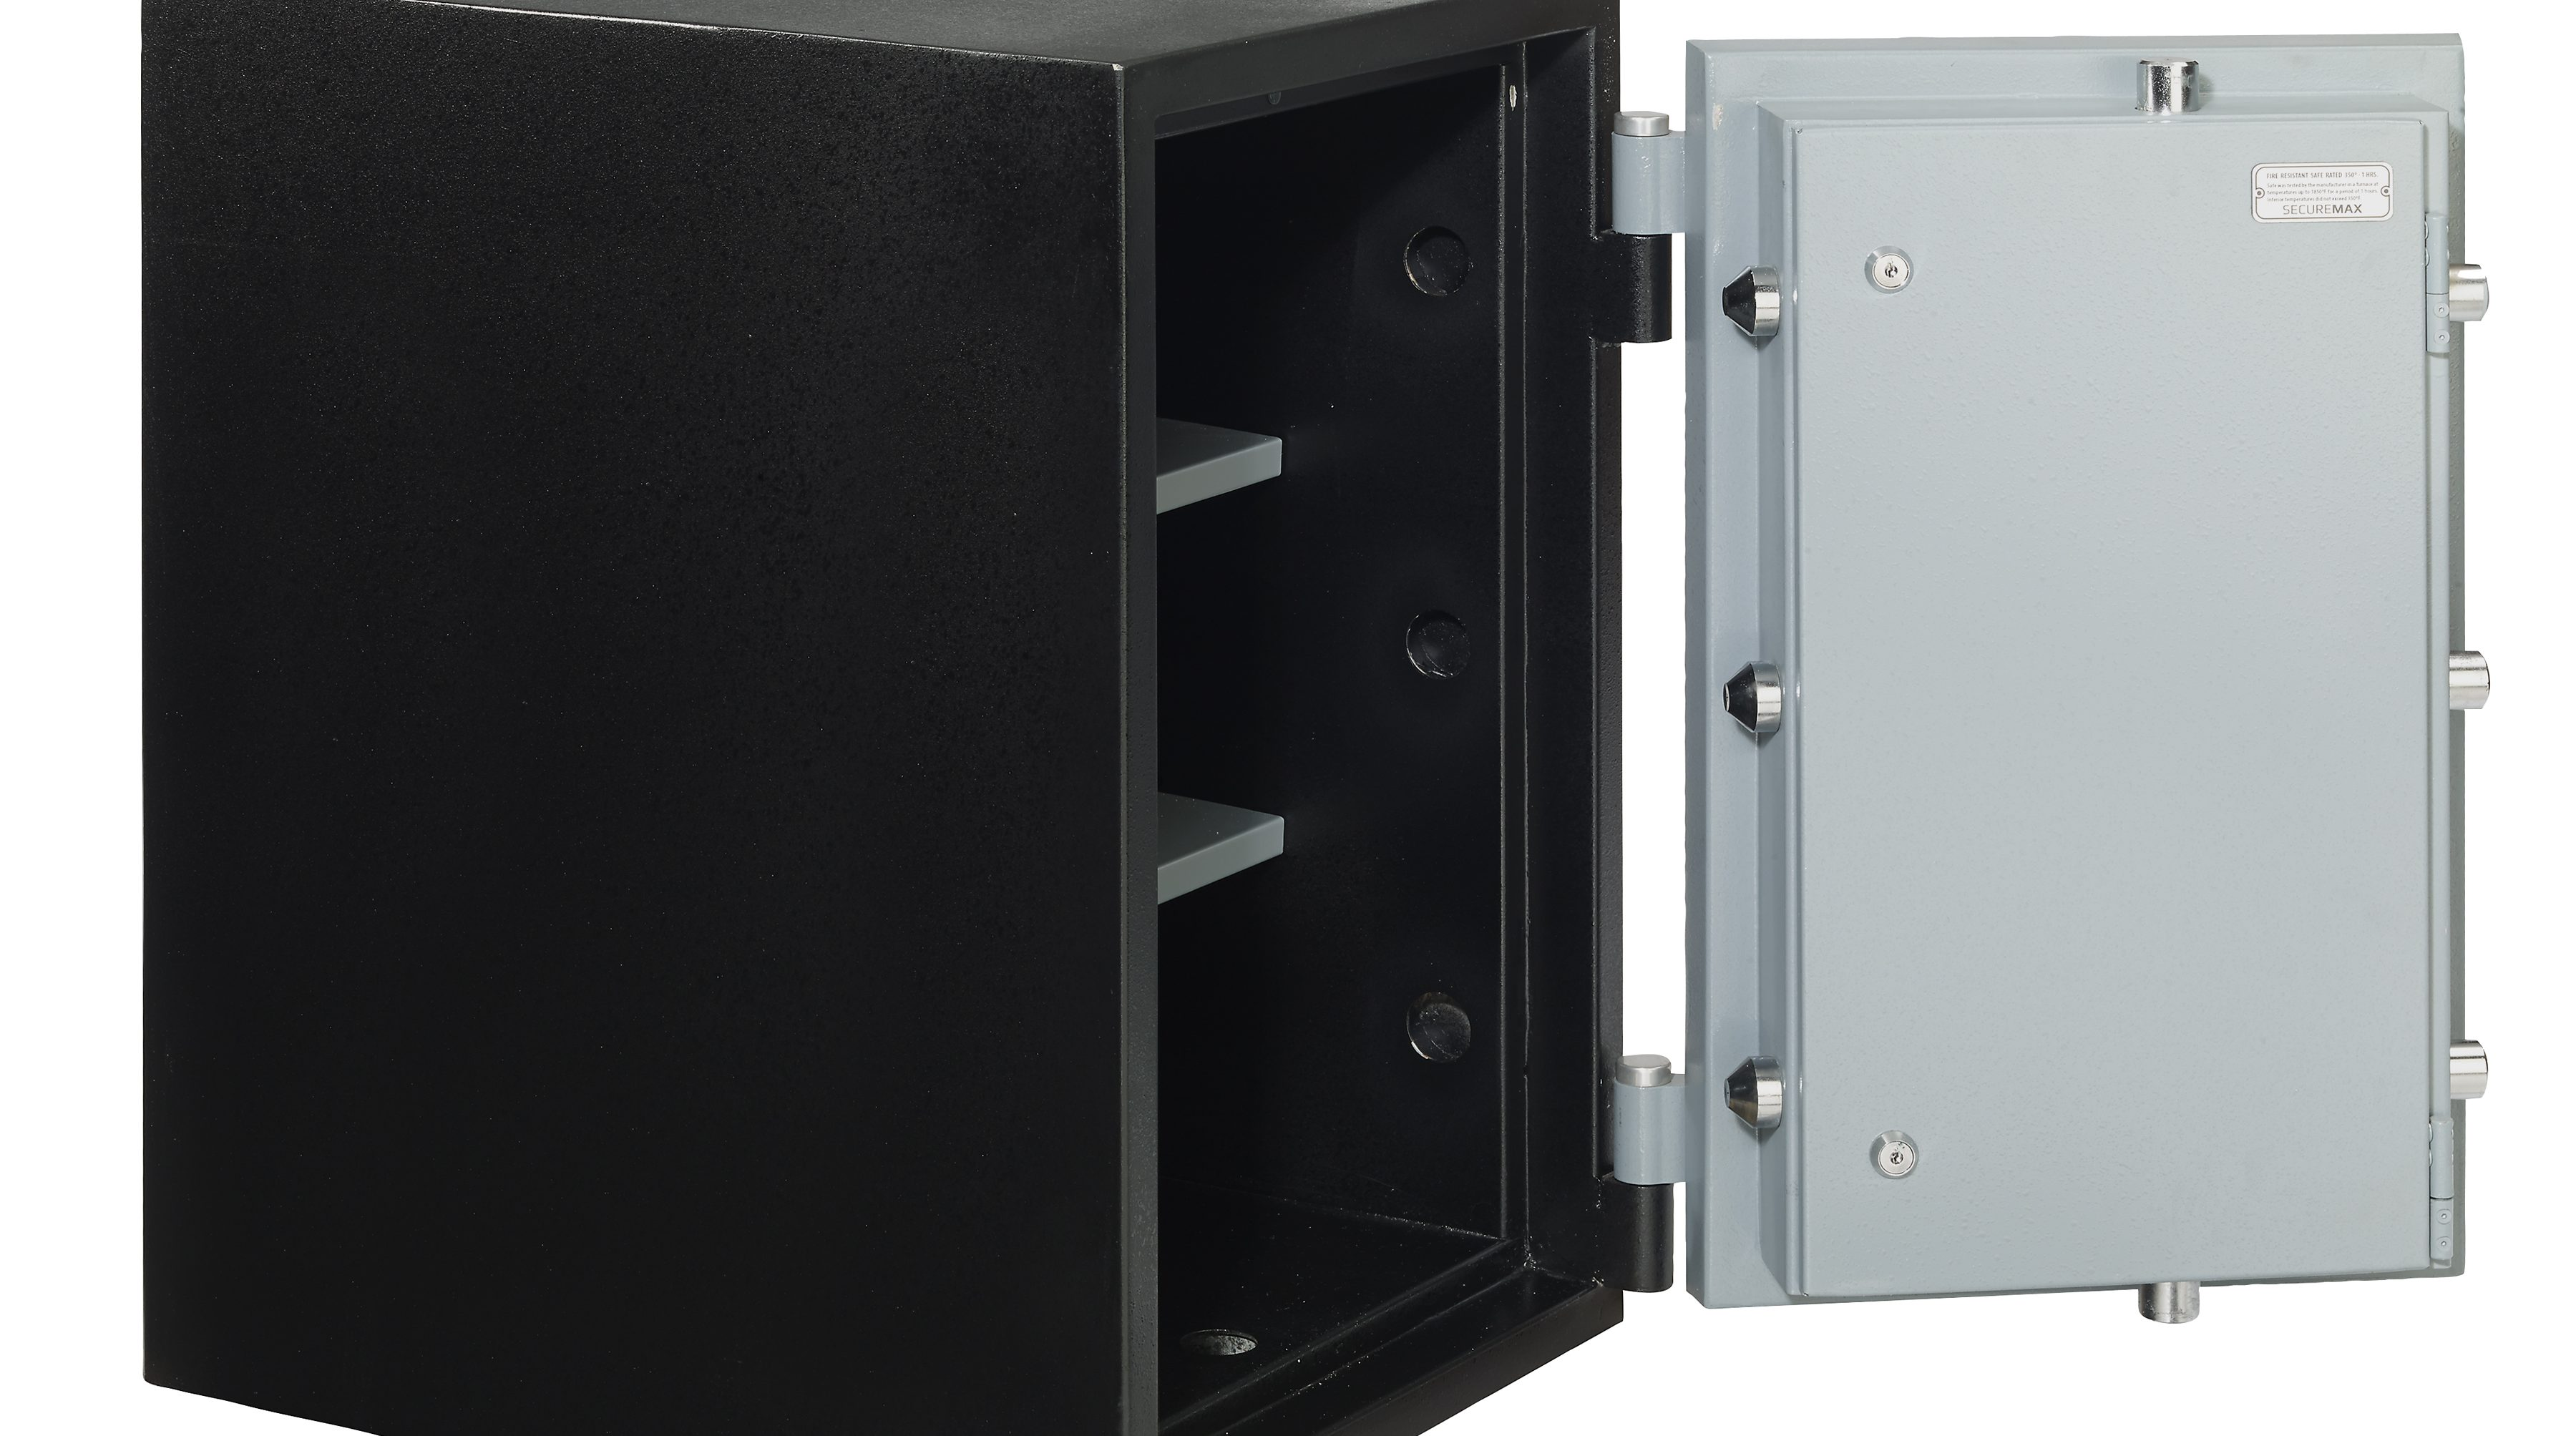 https://www.accusafes.com/wp-content/uploads/2018/10/LW-2414-SIDE-3600x2007.jpg